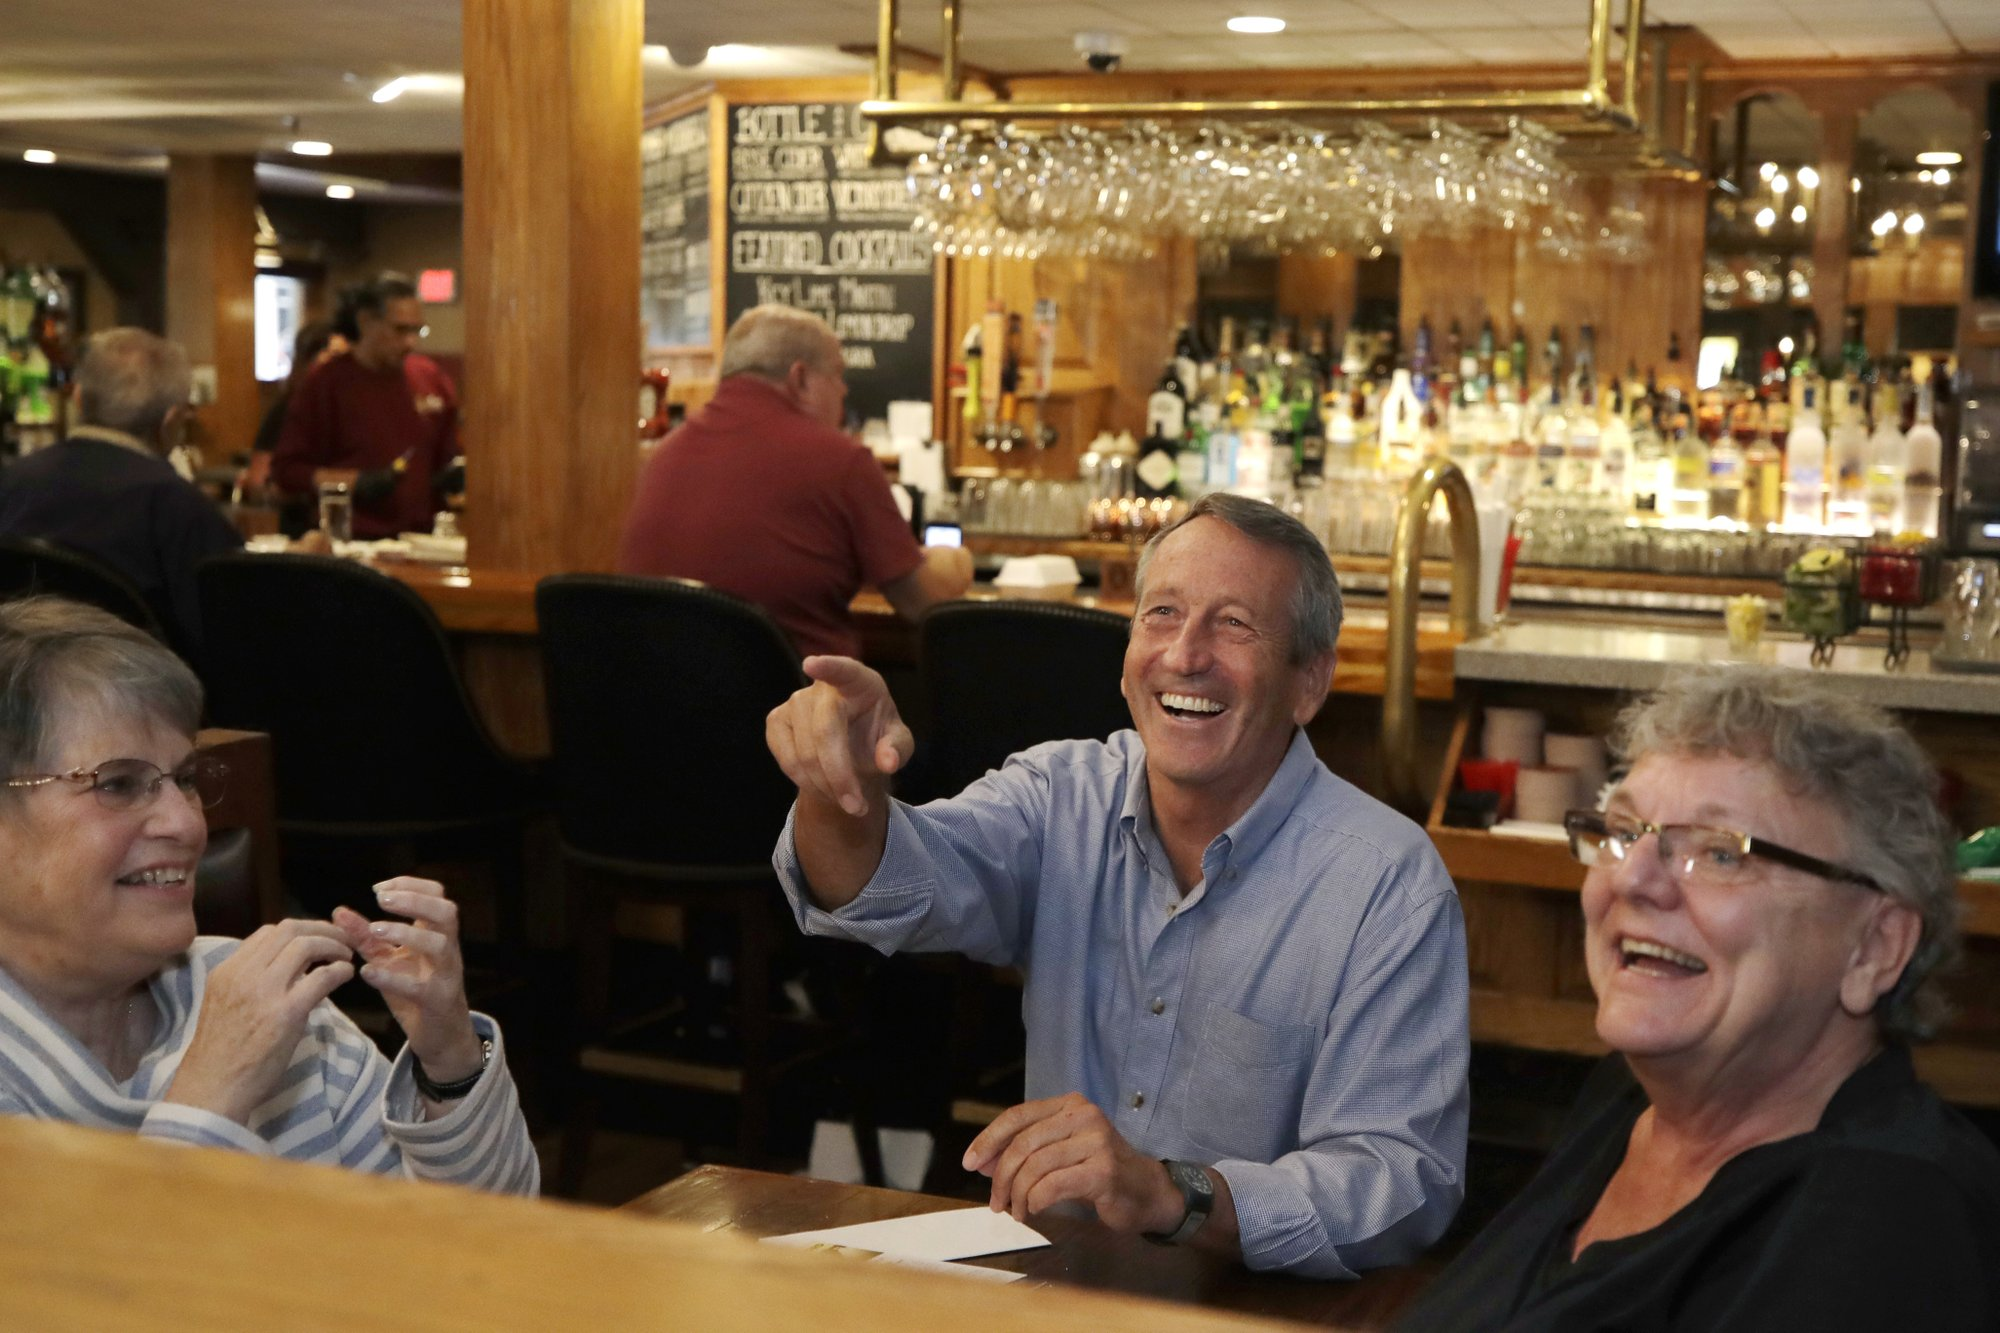 Sanford takes his first 2020 campaign trip to New Hampshire